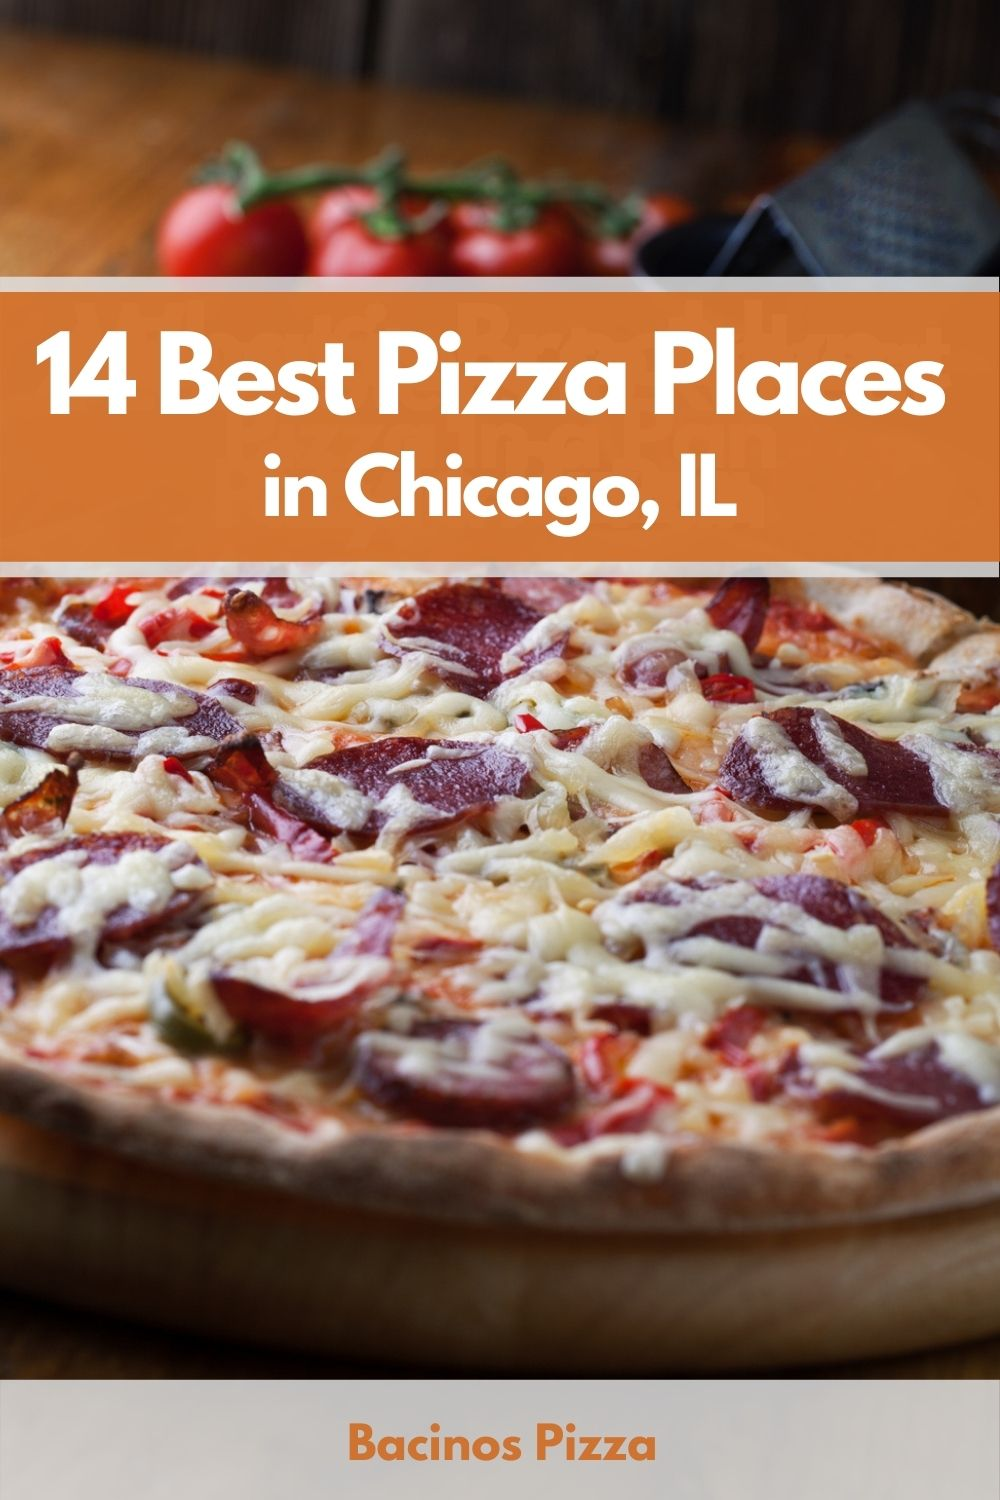 14 Best Pizza Places in Chicago, IL pin 2